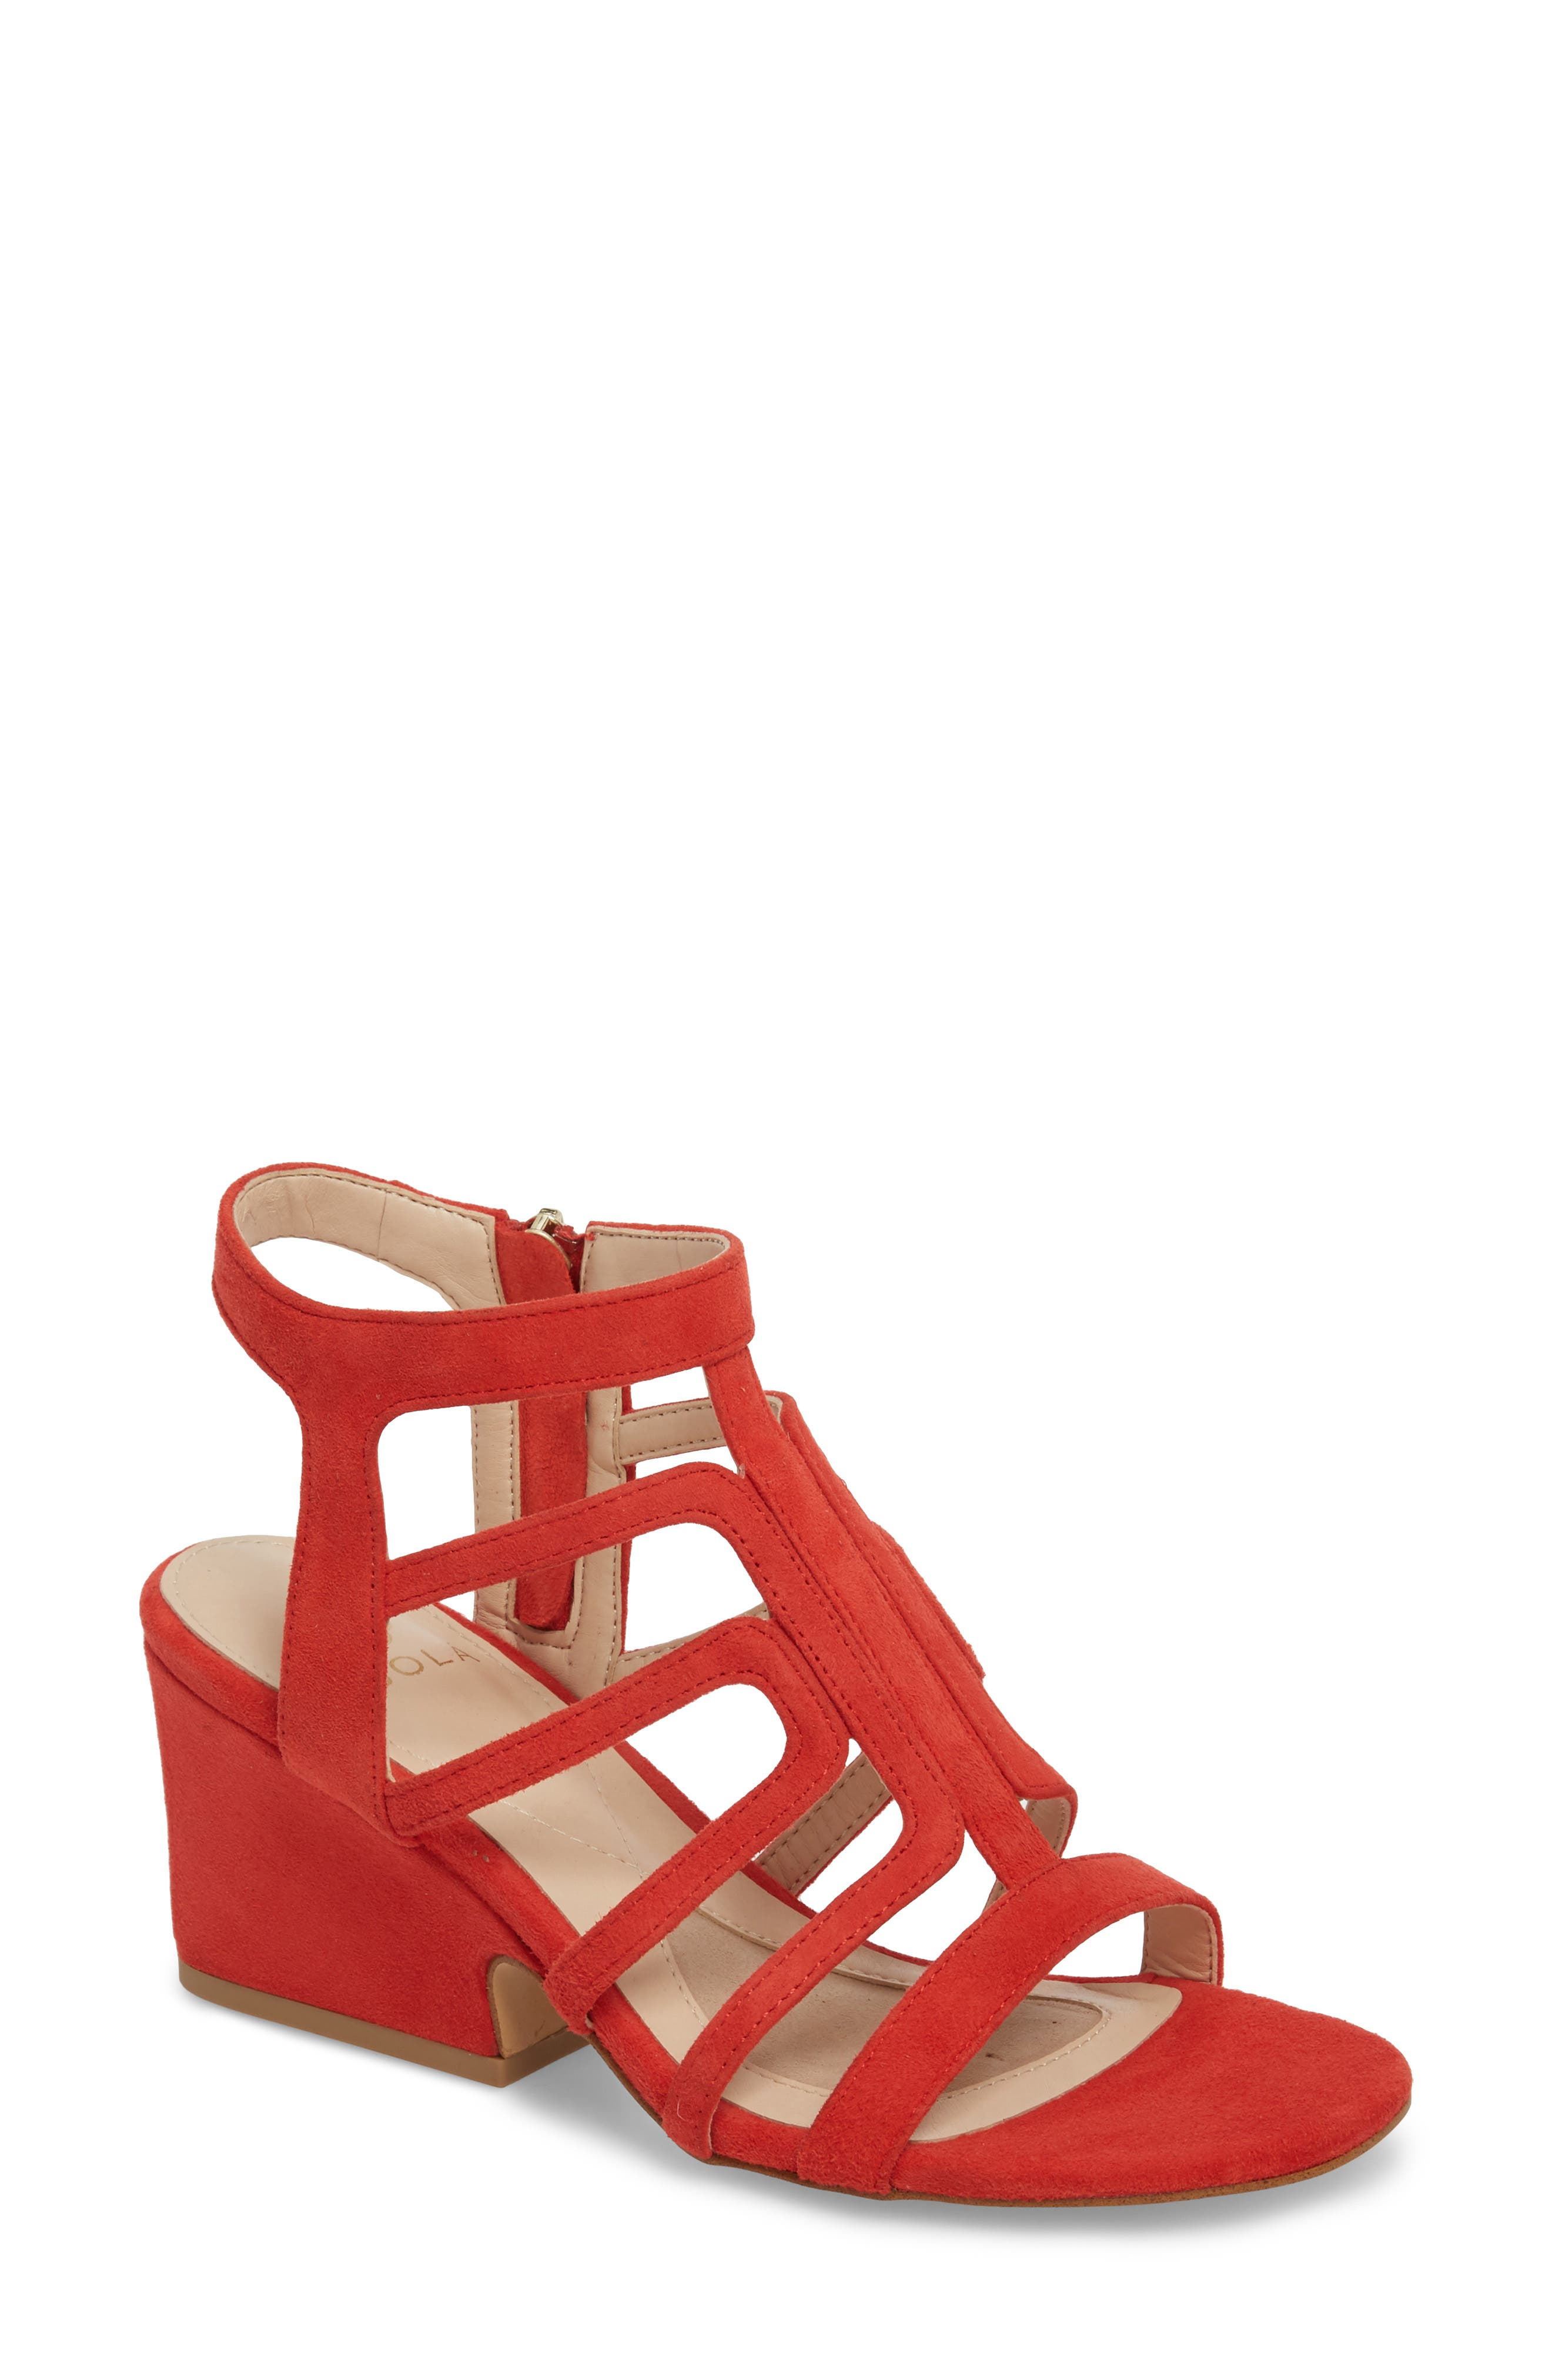 Lina Sandal,                         Main,                         color, Lipstick Red Suede